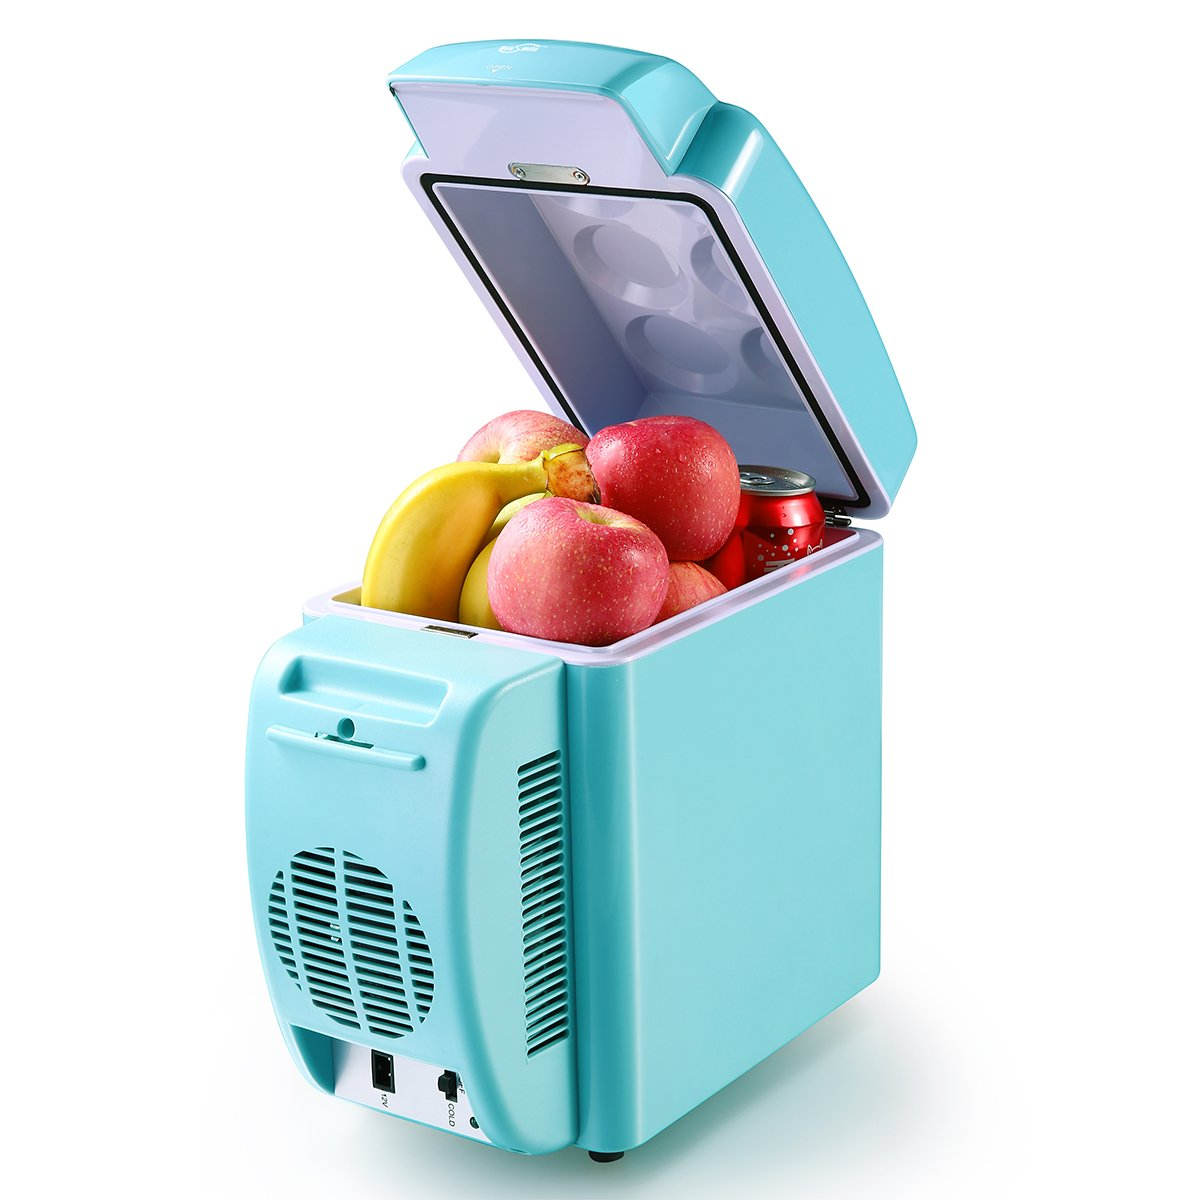 Housmile Thermo - Electric Cooler and Warmer Car Refrigerator Portable Mini Fridge AC & DC, 7 Liter / 12 Can